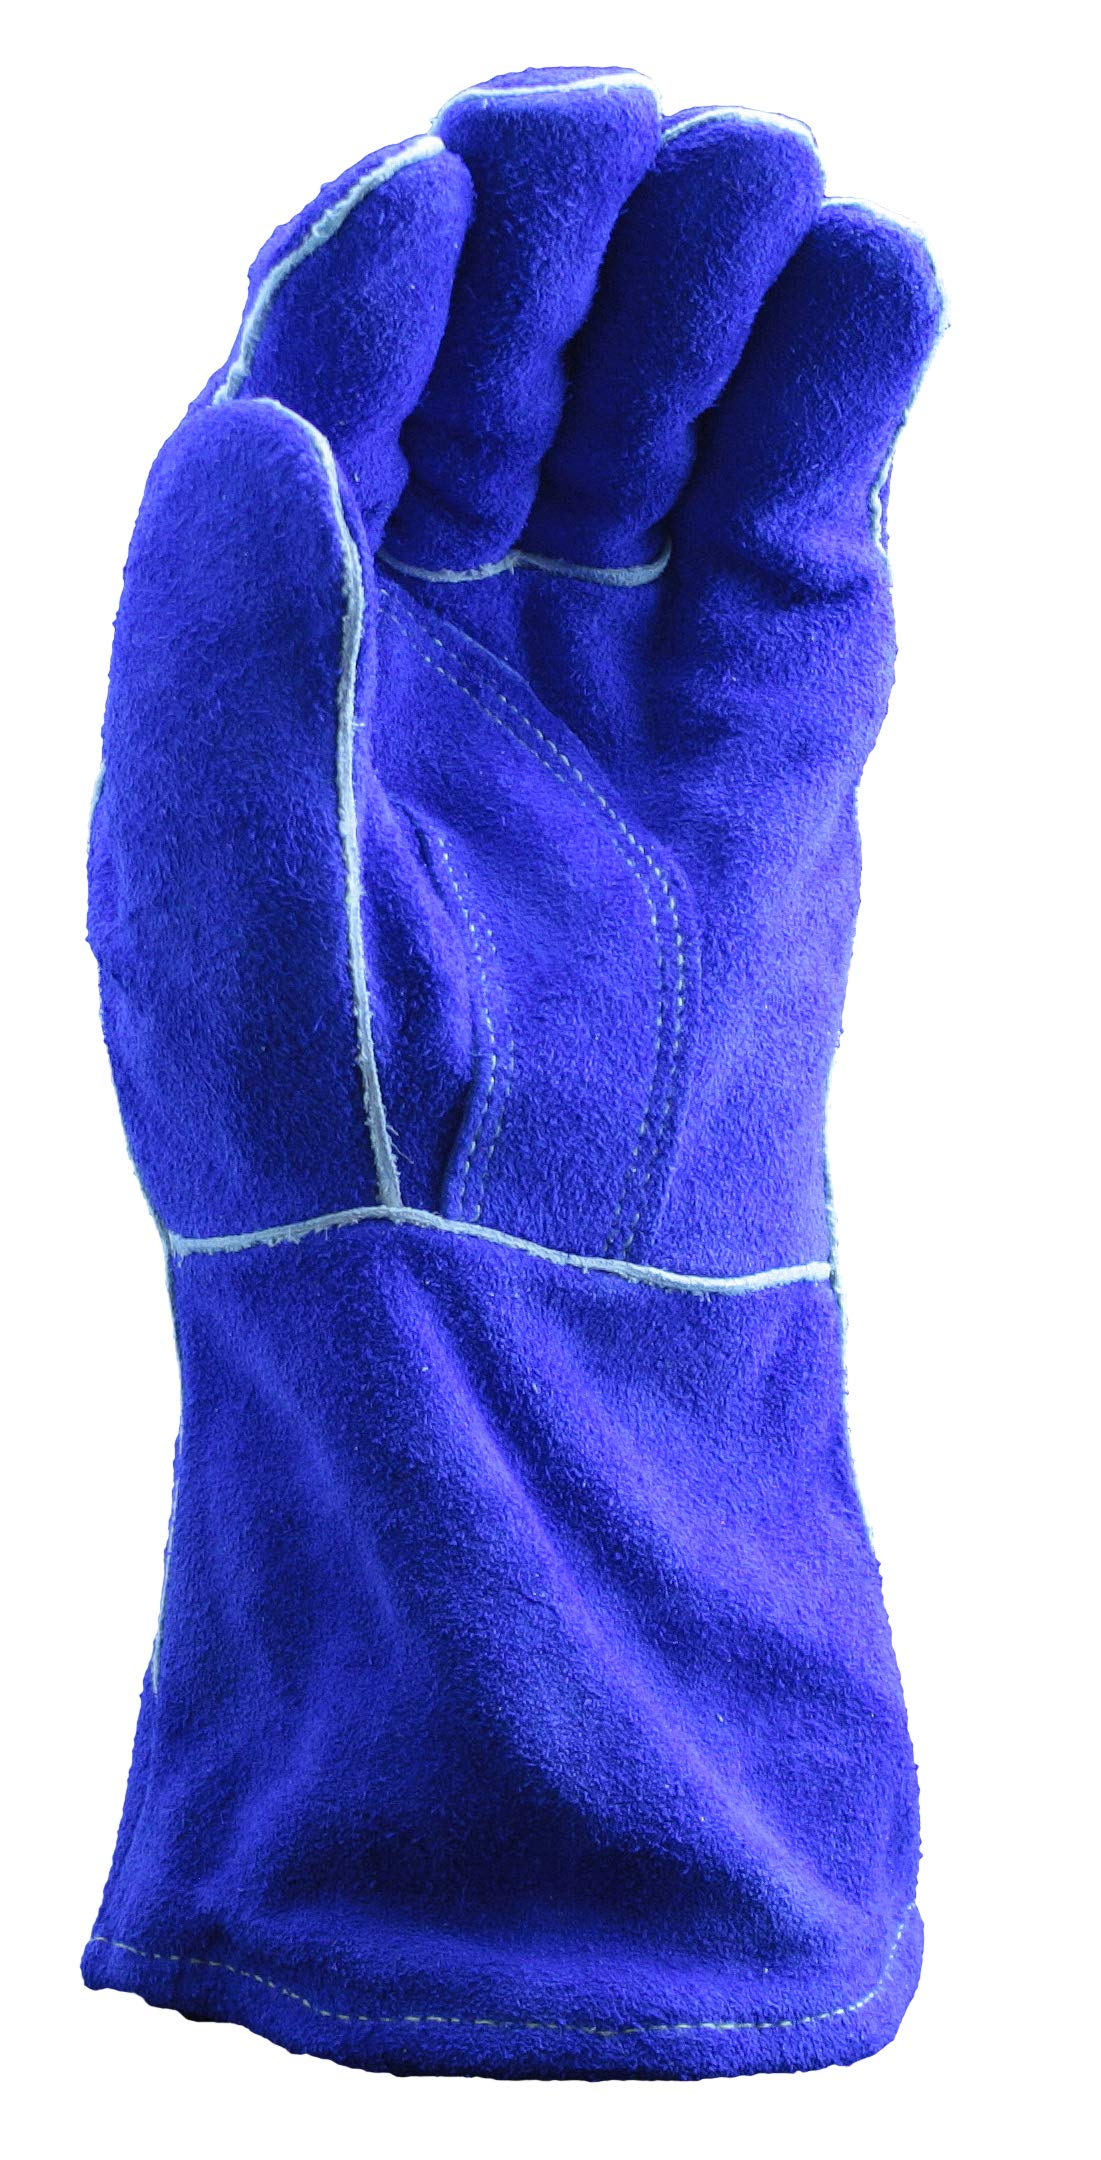 Blue Premium Leather Welders Gloves | Slip On Cuff, 14'' Length, Cotton/Foam Lining, Welted Seam, Kevlar Stitching Material - Small (Pack of 12) by Stauffer Glove & Safety (Image #2)